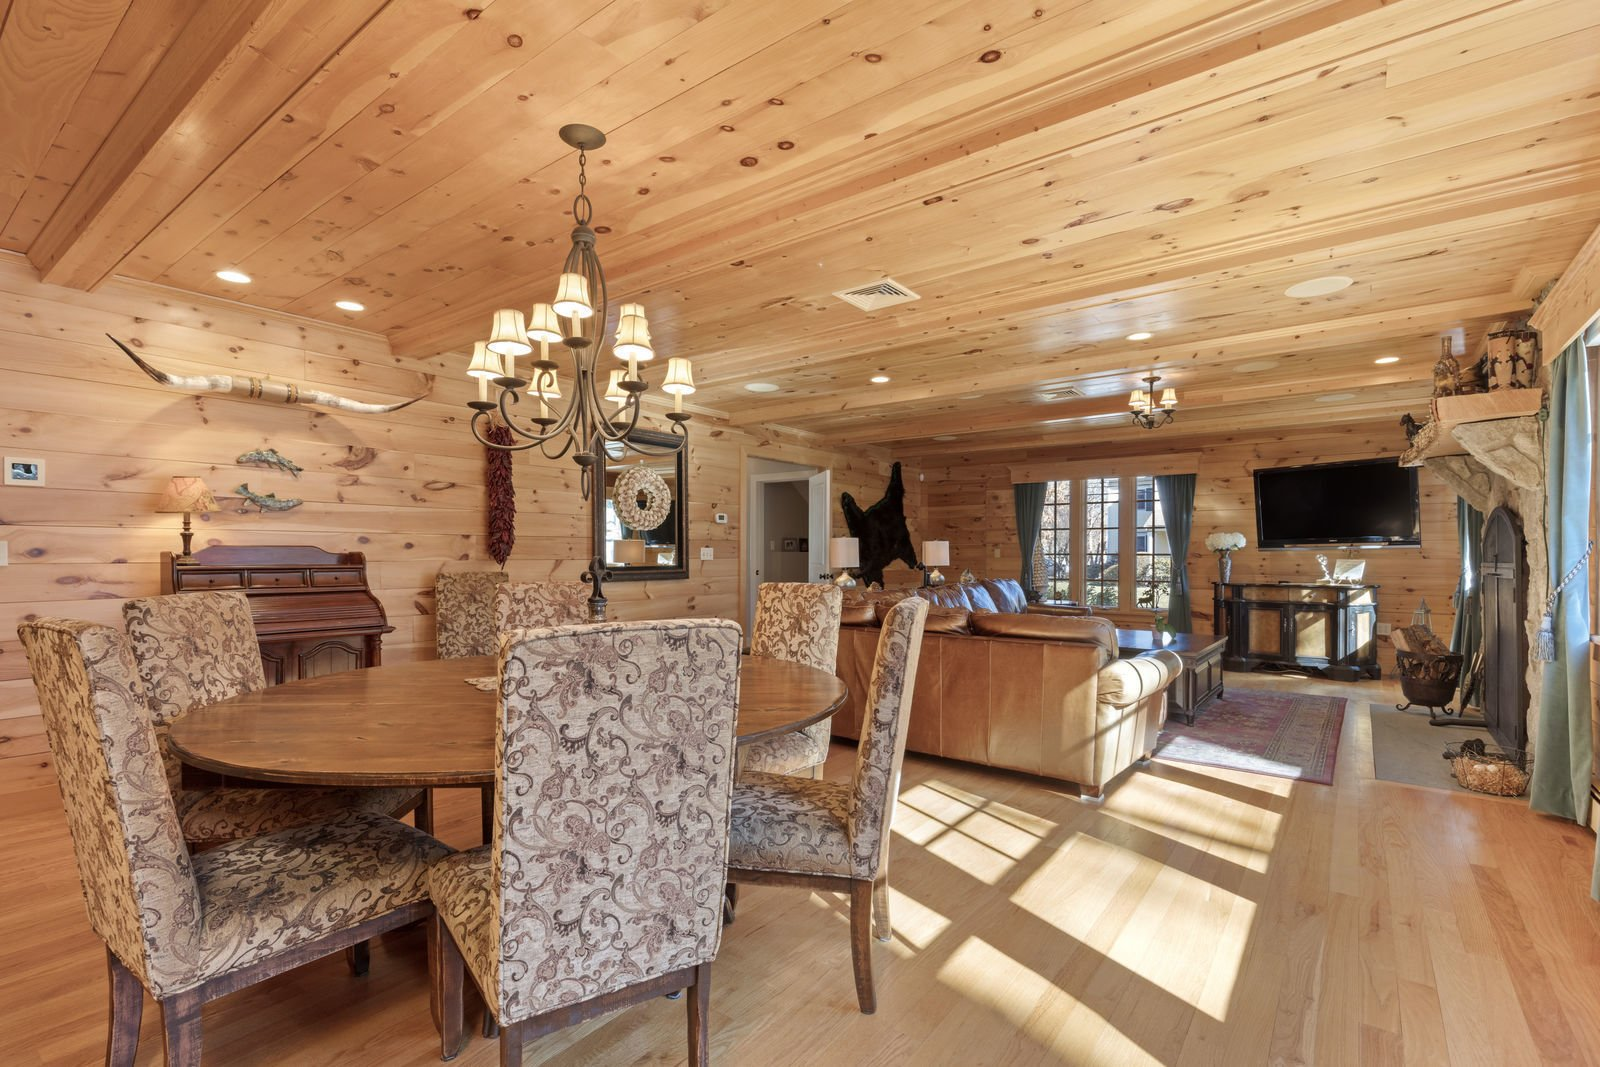 Dining Room, Ceiling Lighting, Table, Medium Hardwood Floor, and Chair  Shingle Style Rustic Chic